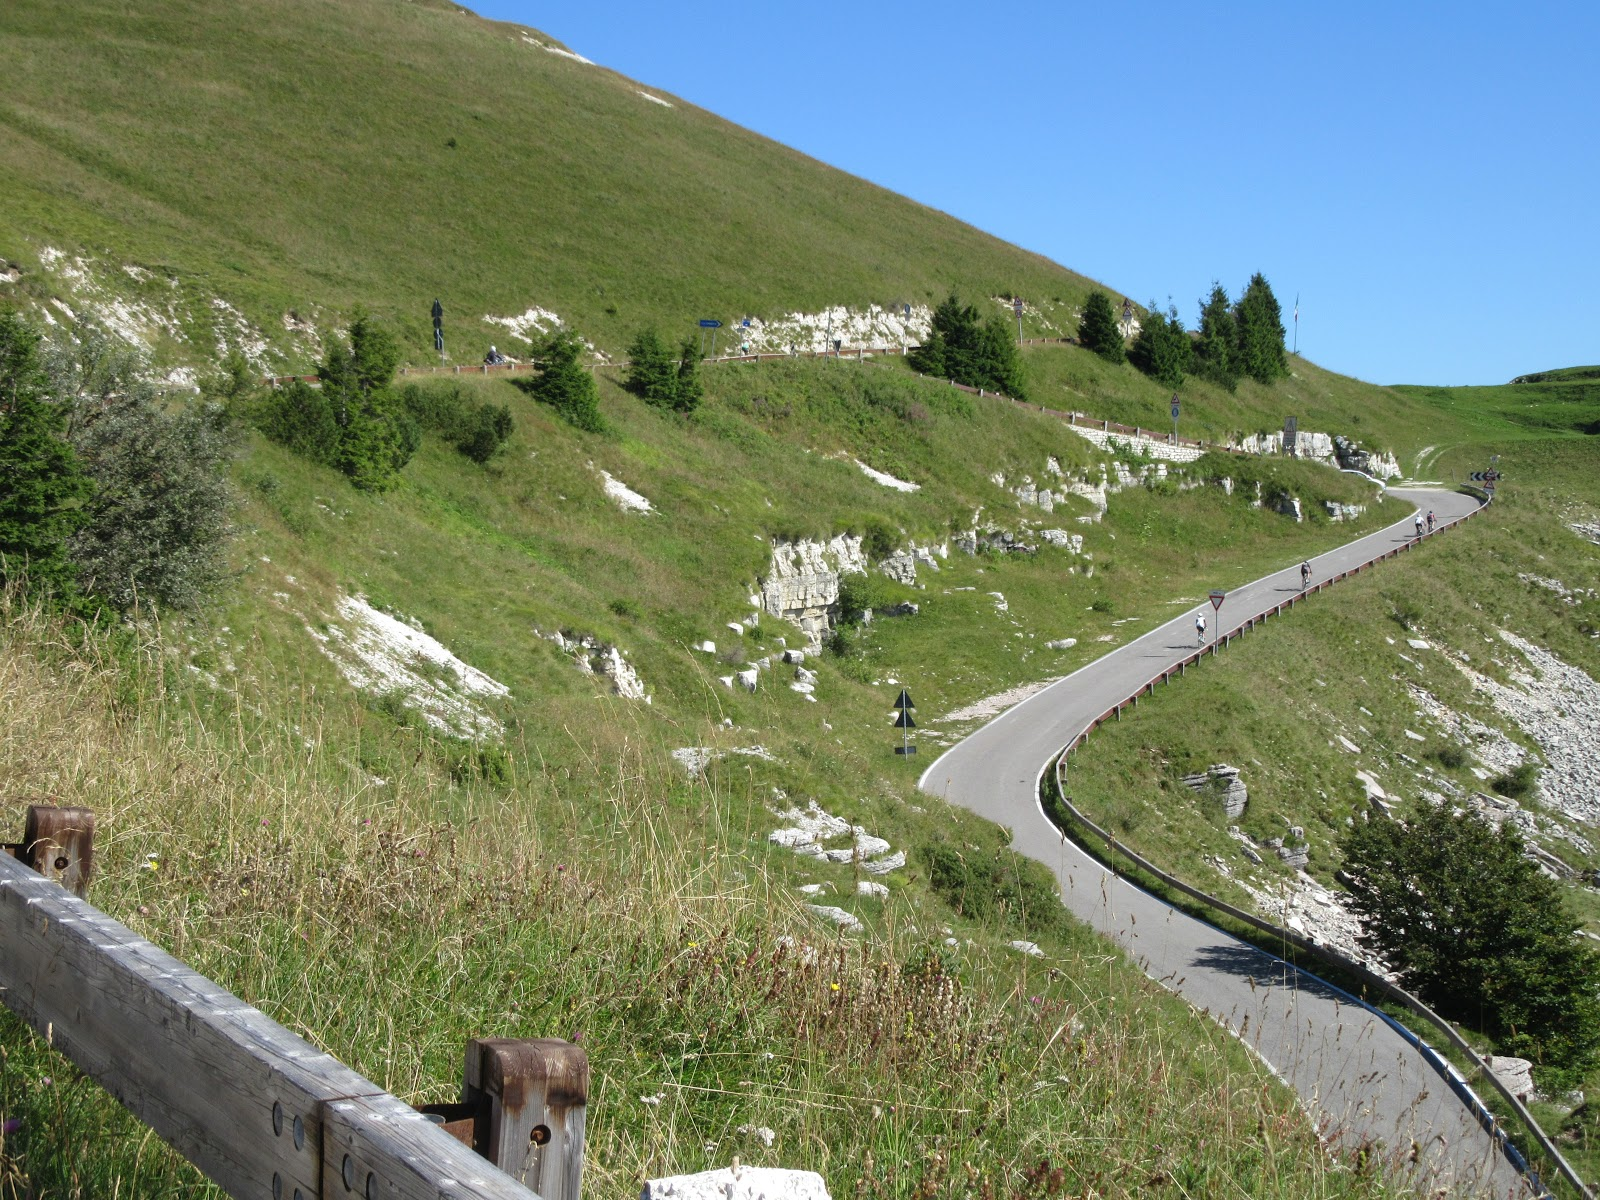 Bicycle ride Monte Grappa from Romano d'Ezzilino - road and green hills